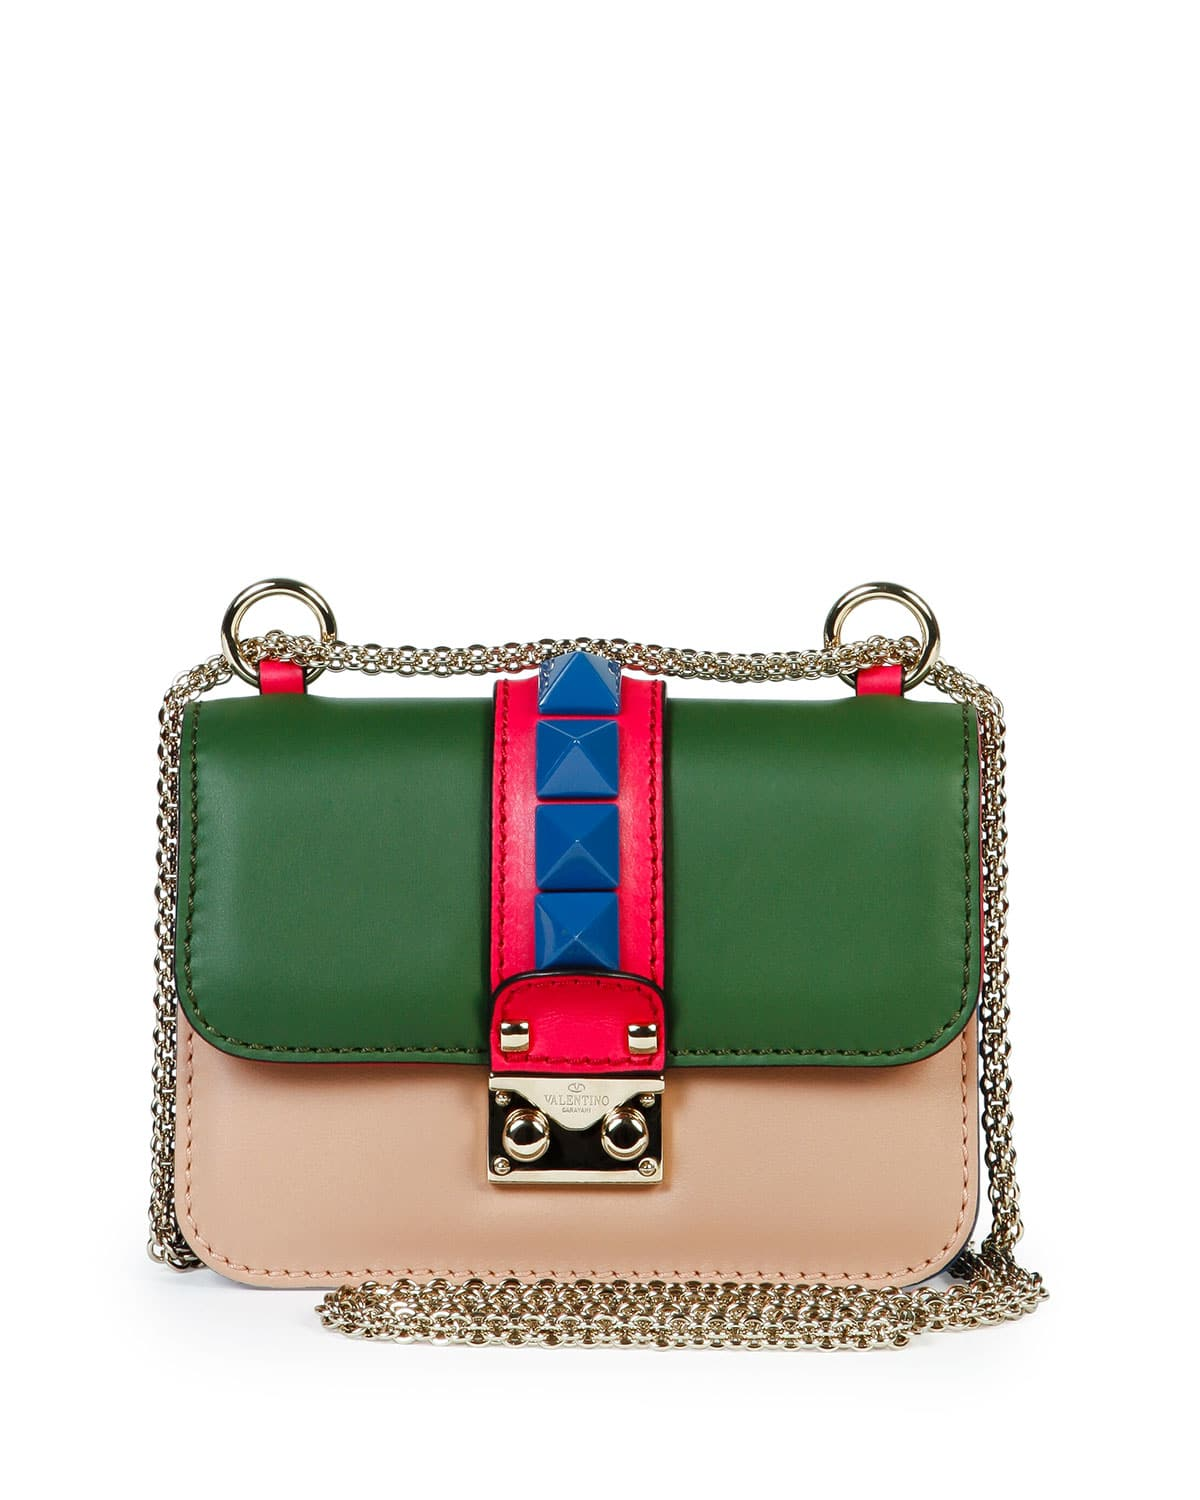 Valentino Resort 2016 Bag Collection Featuring Superheroes ...